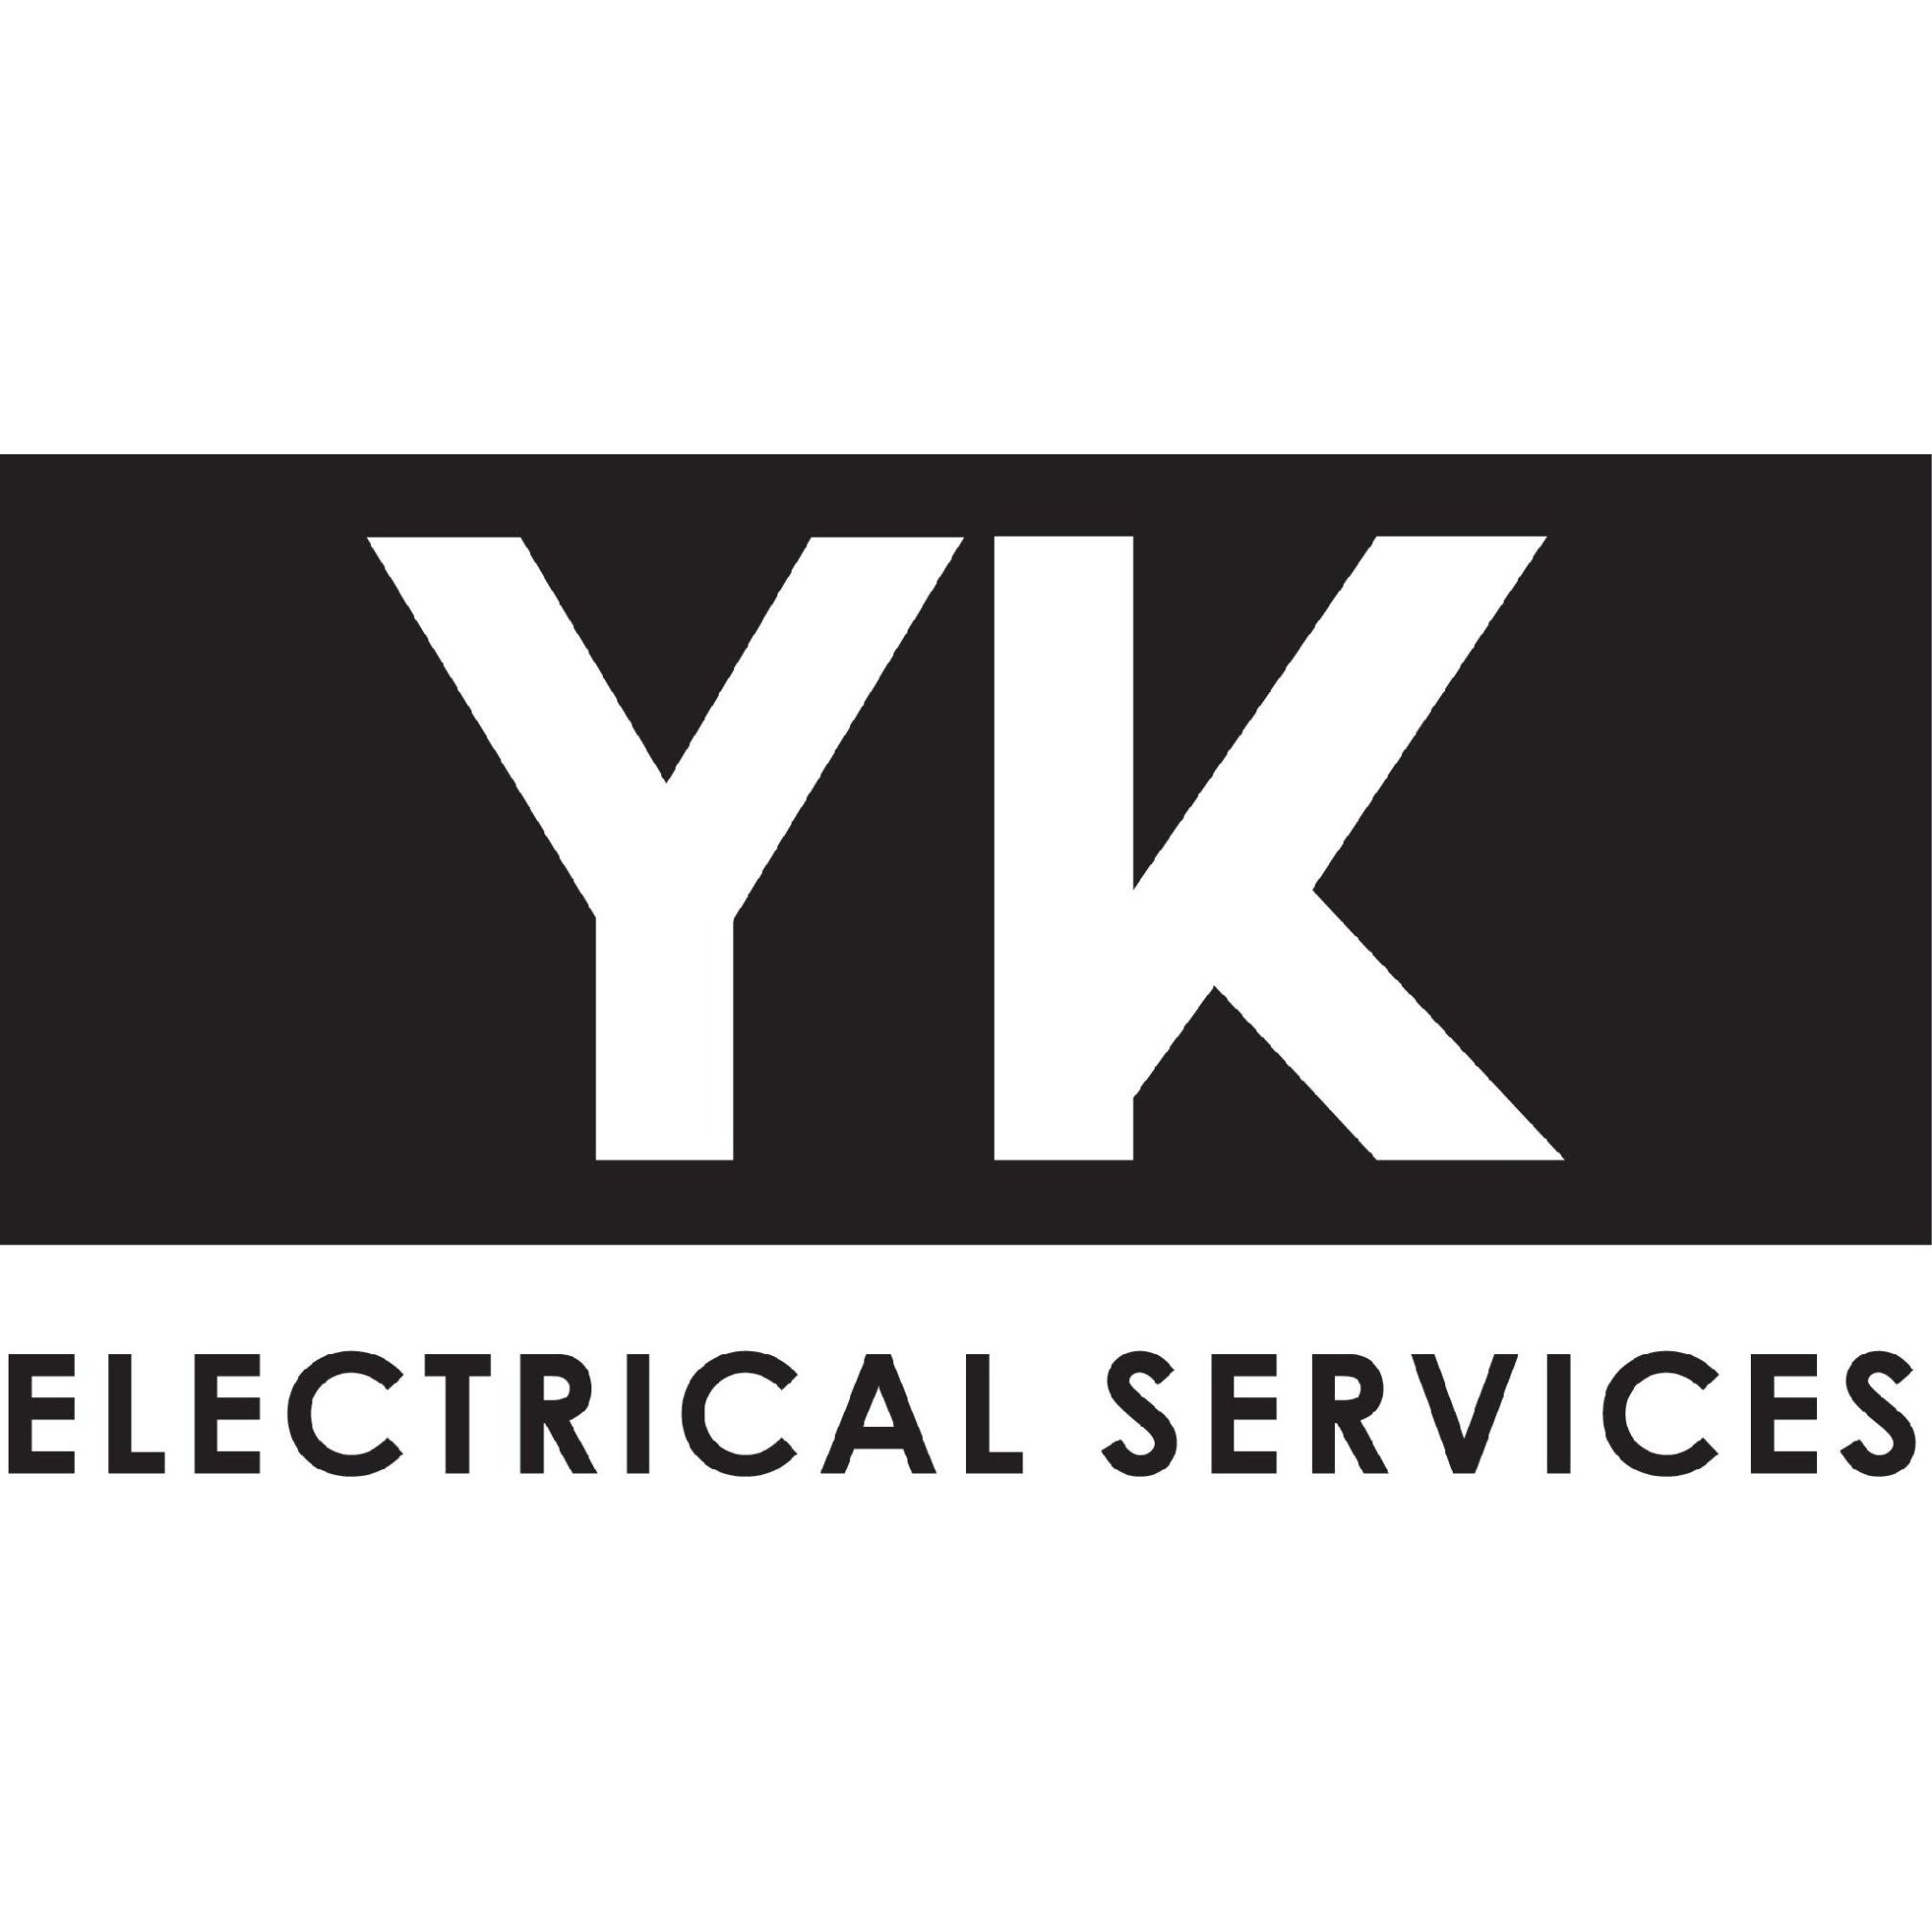 YK Electrical Services